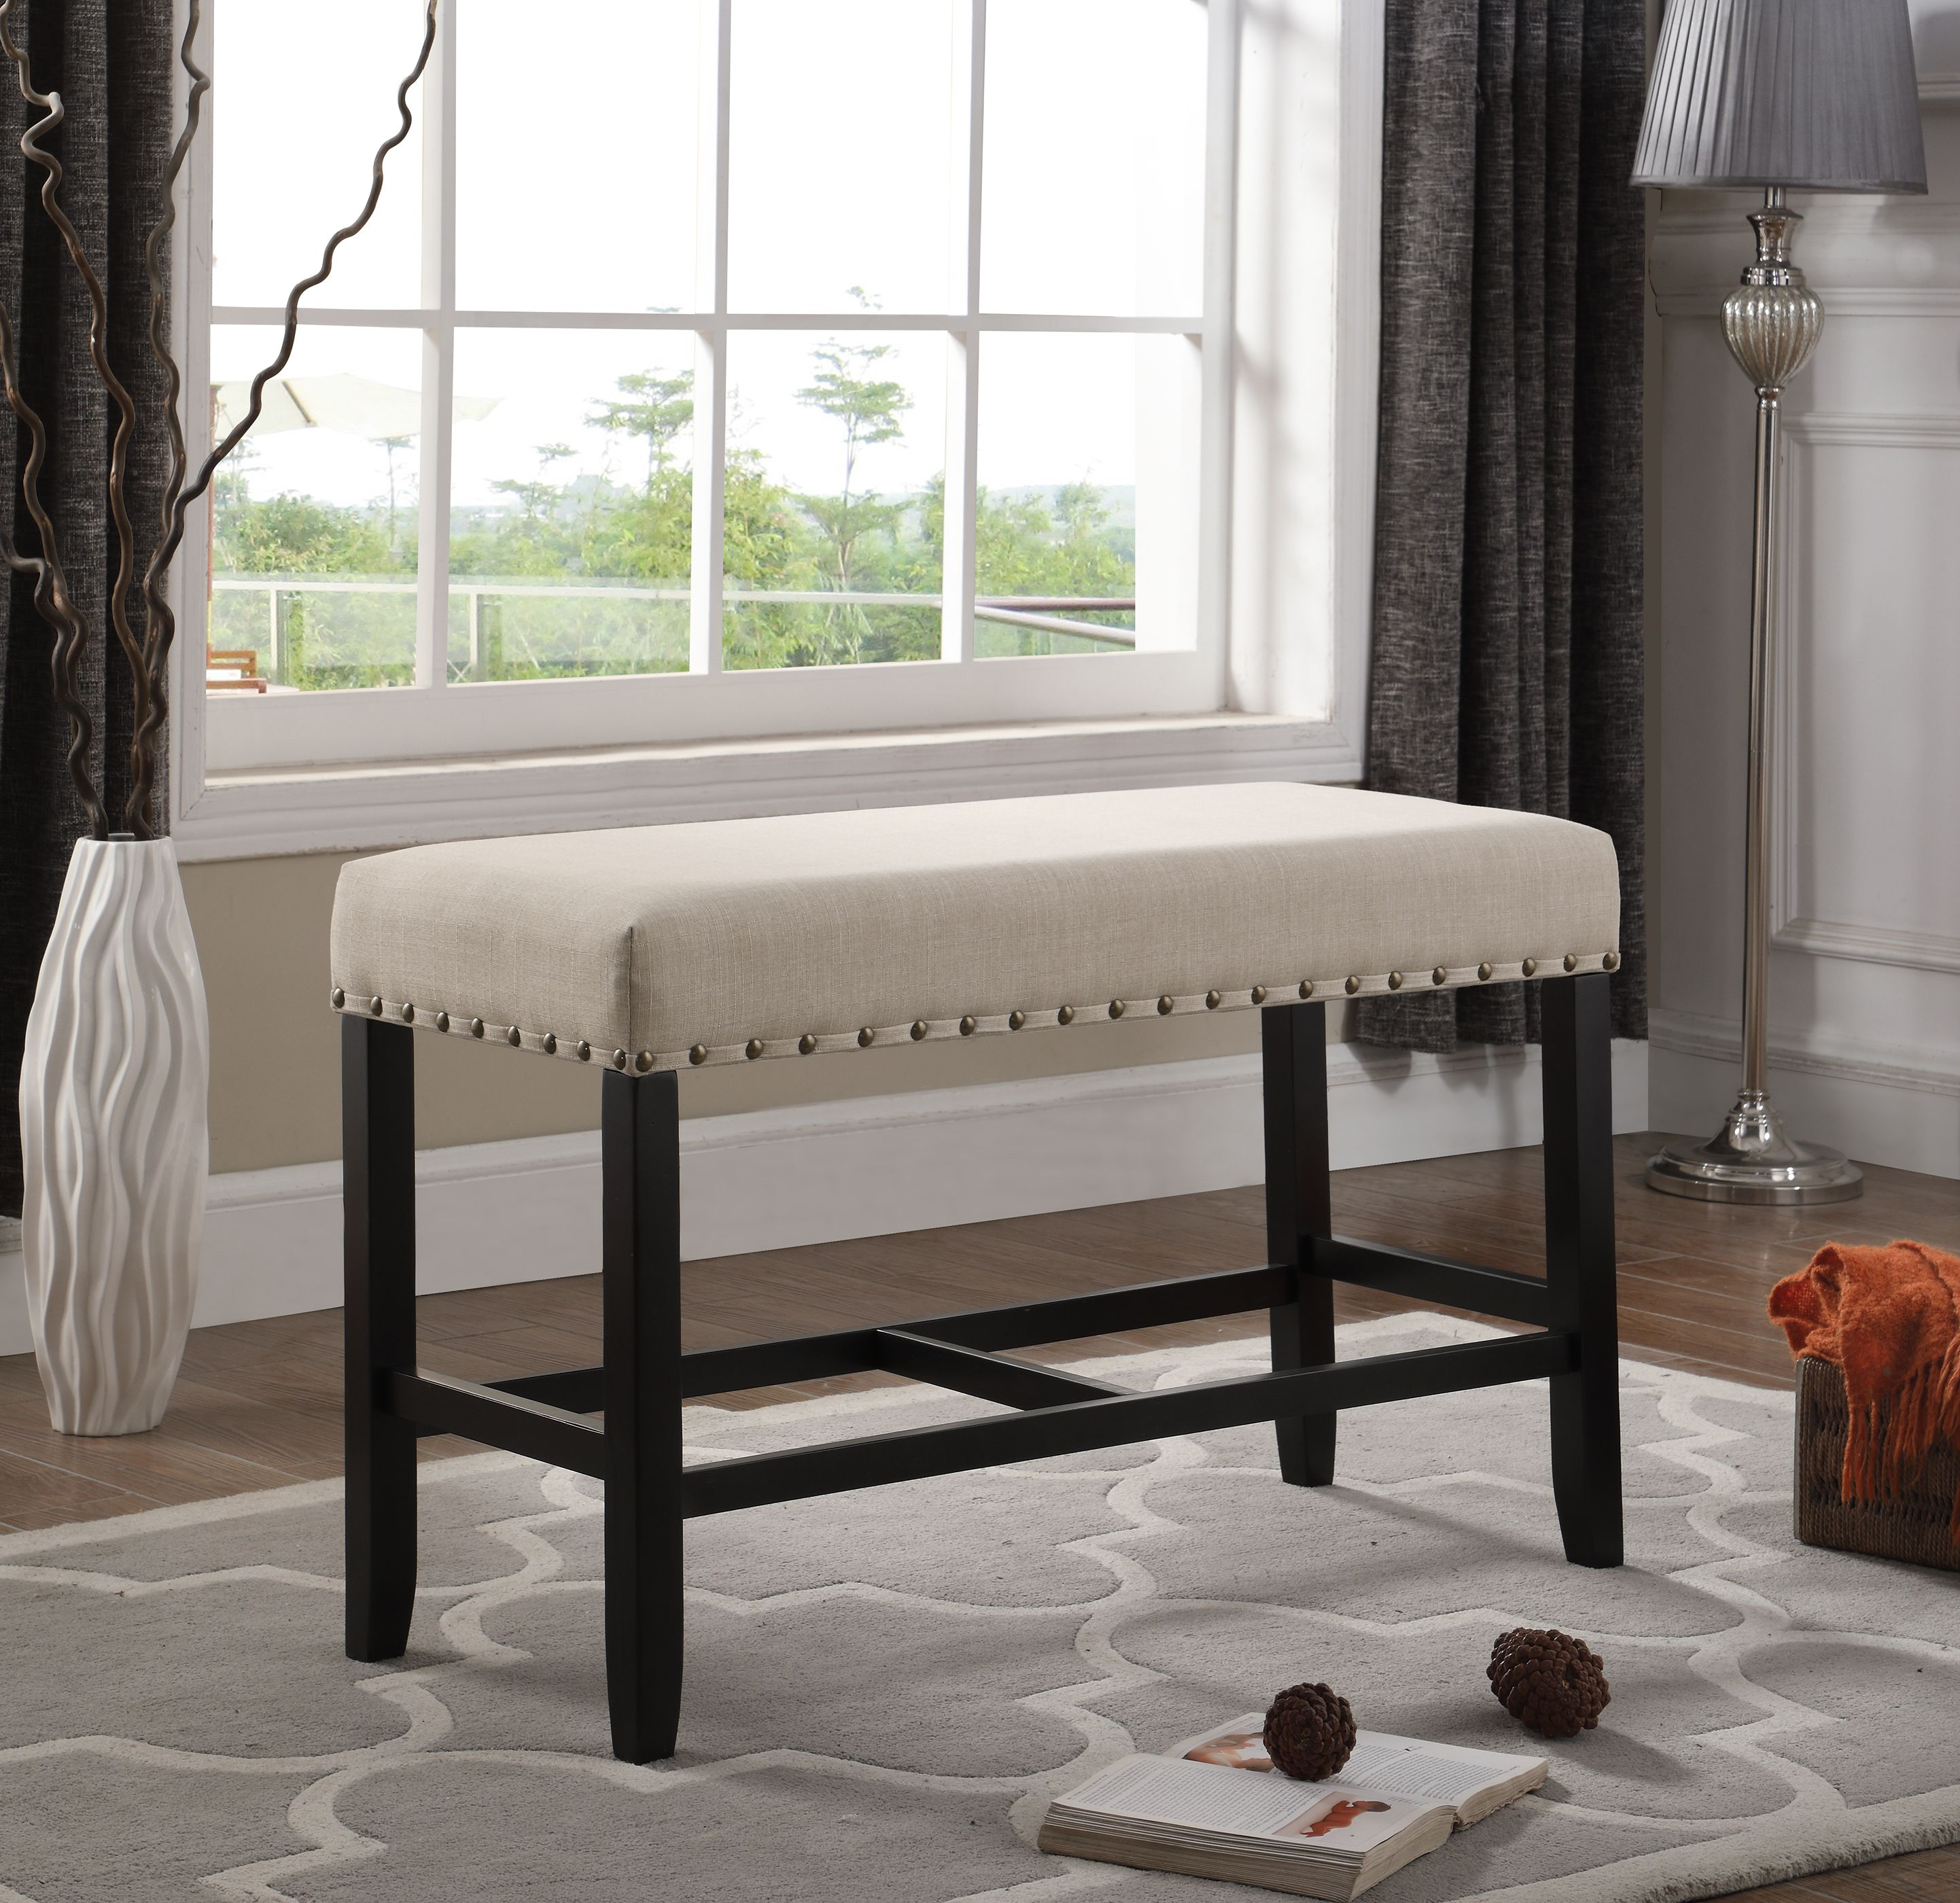 Roundhill Biony Tan Fabric Counter Height Dining Bench with Nailhead Trim